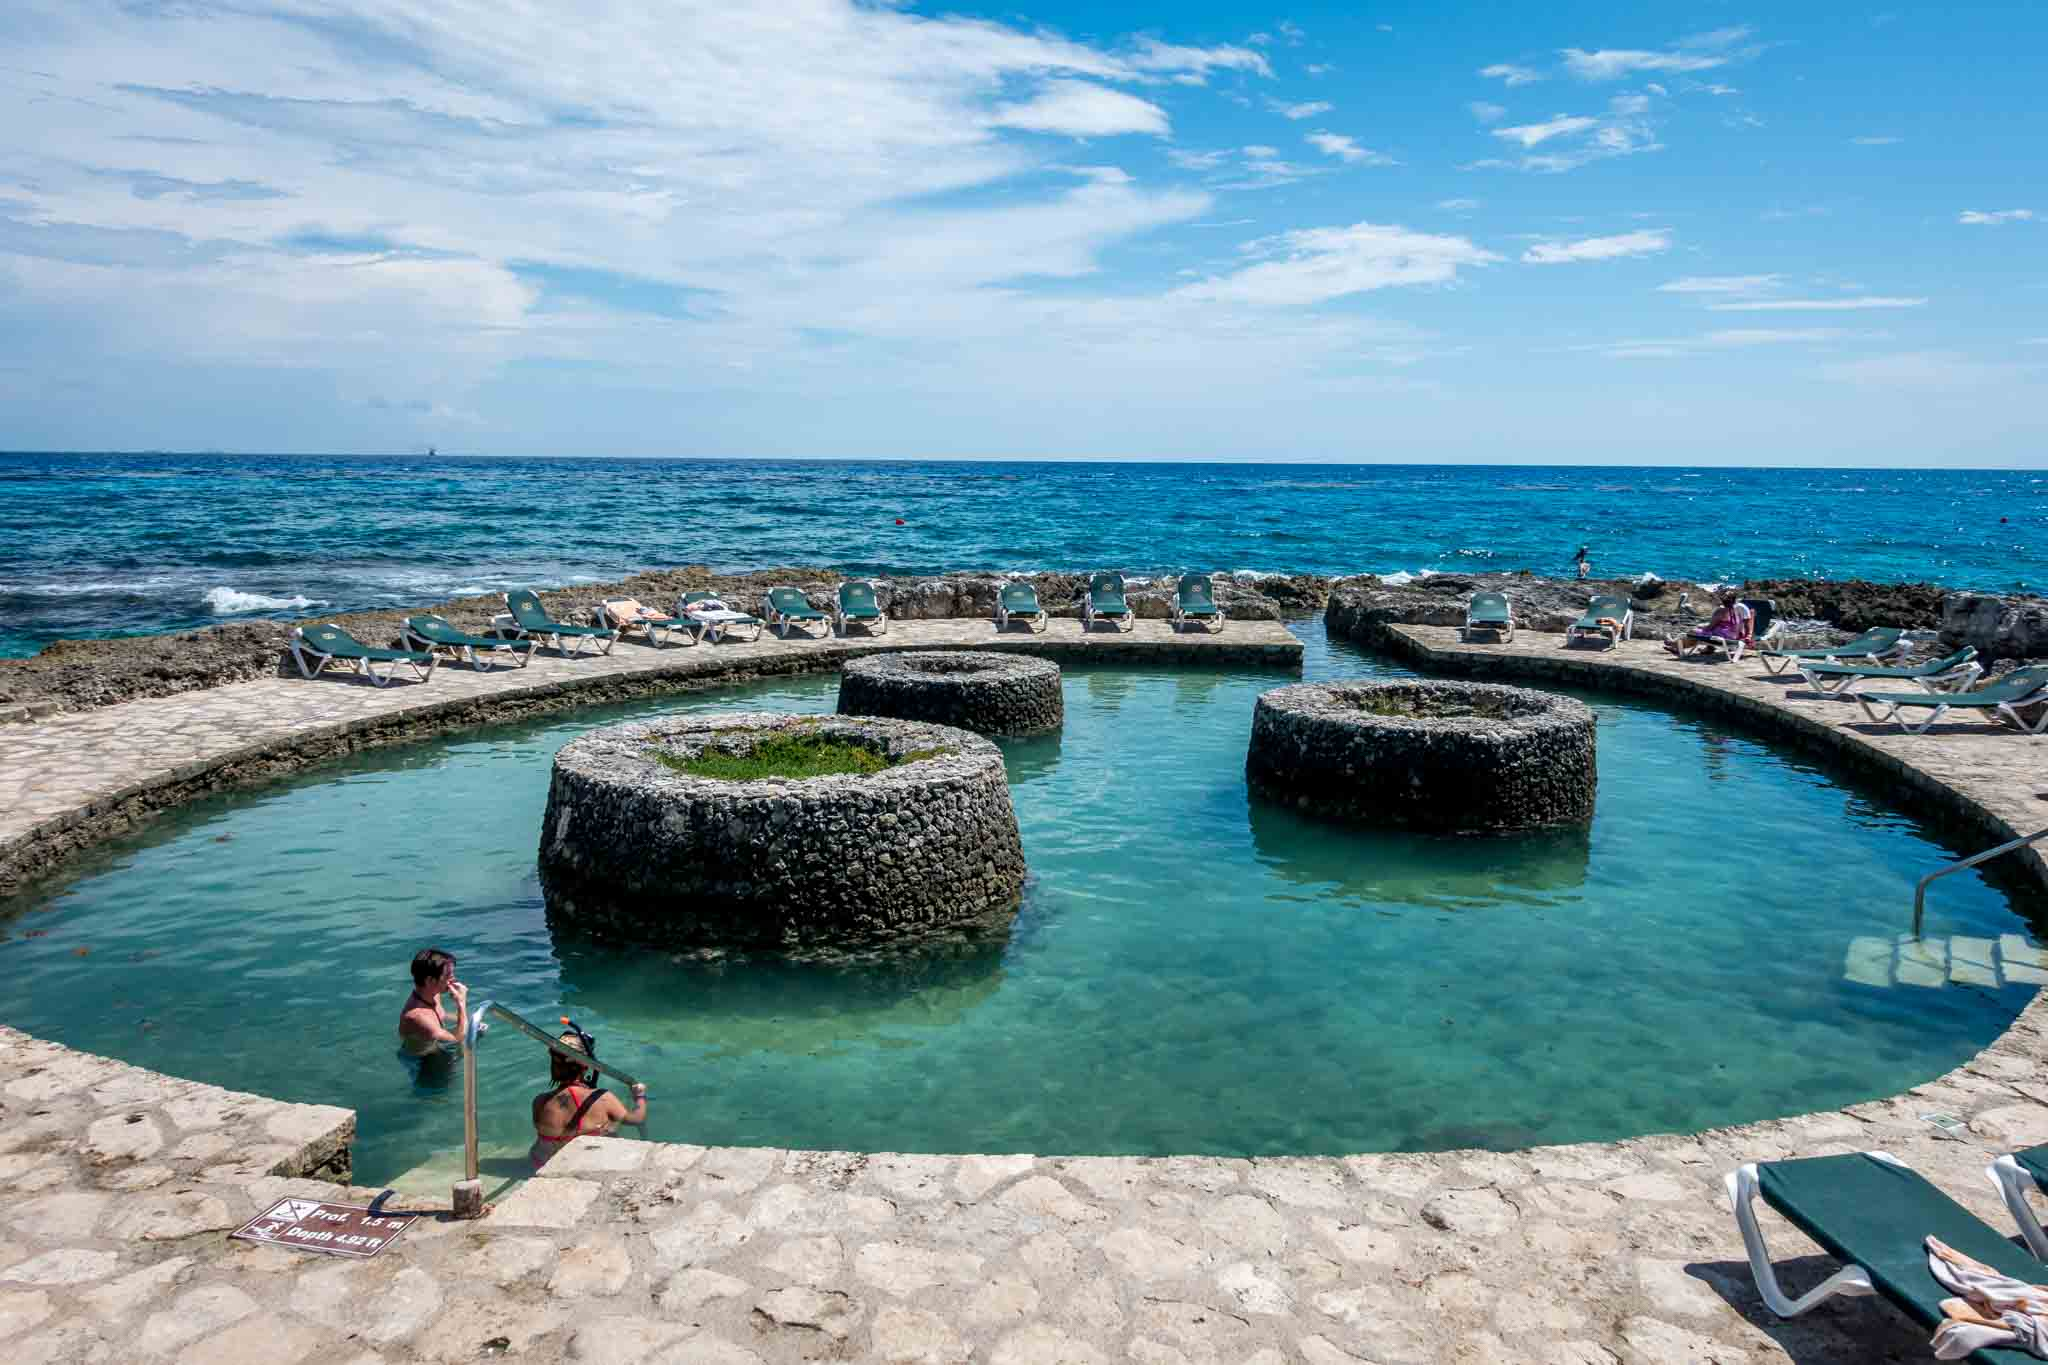 Circular adults-only pool with path to the ocean